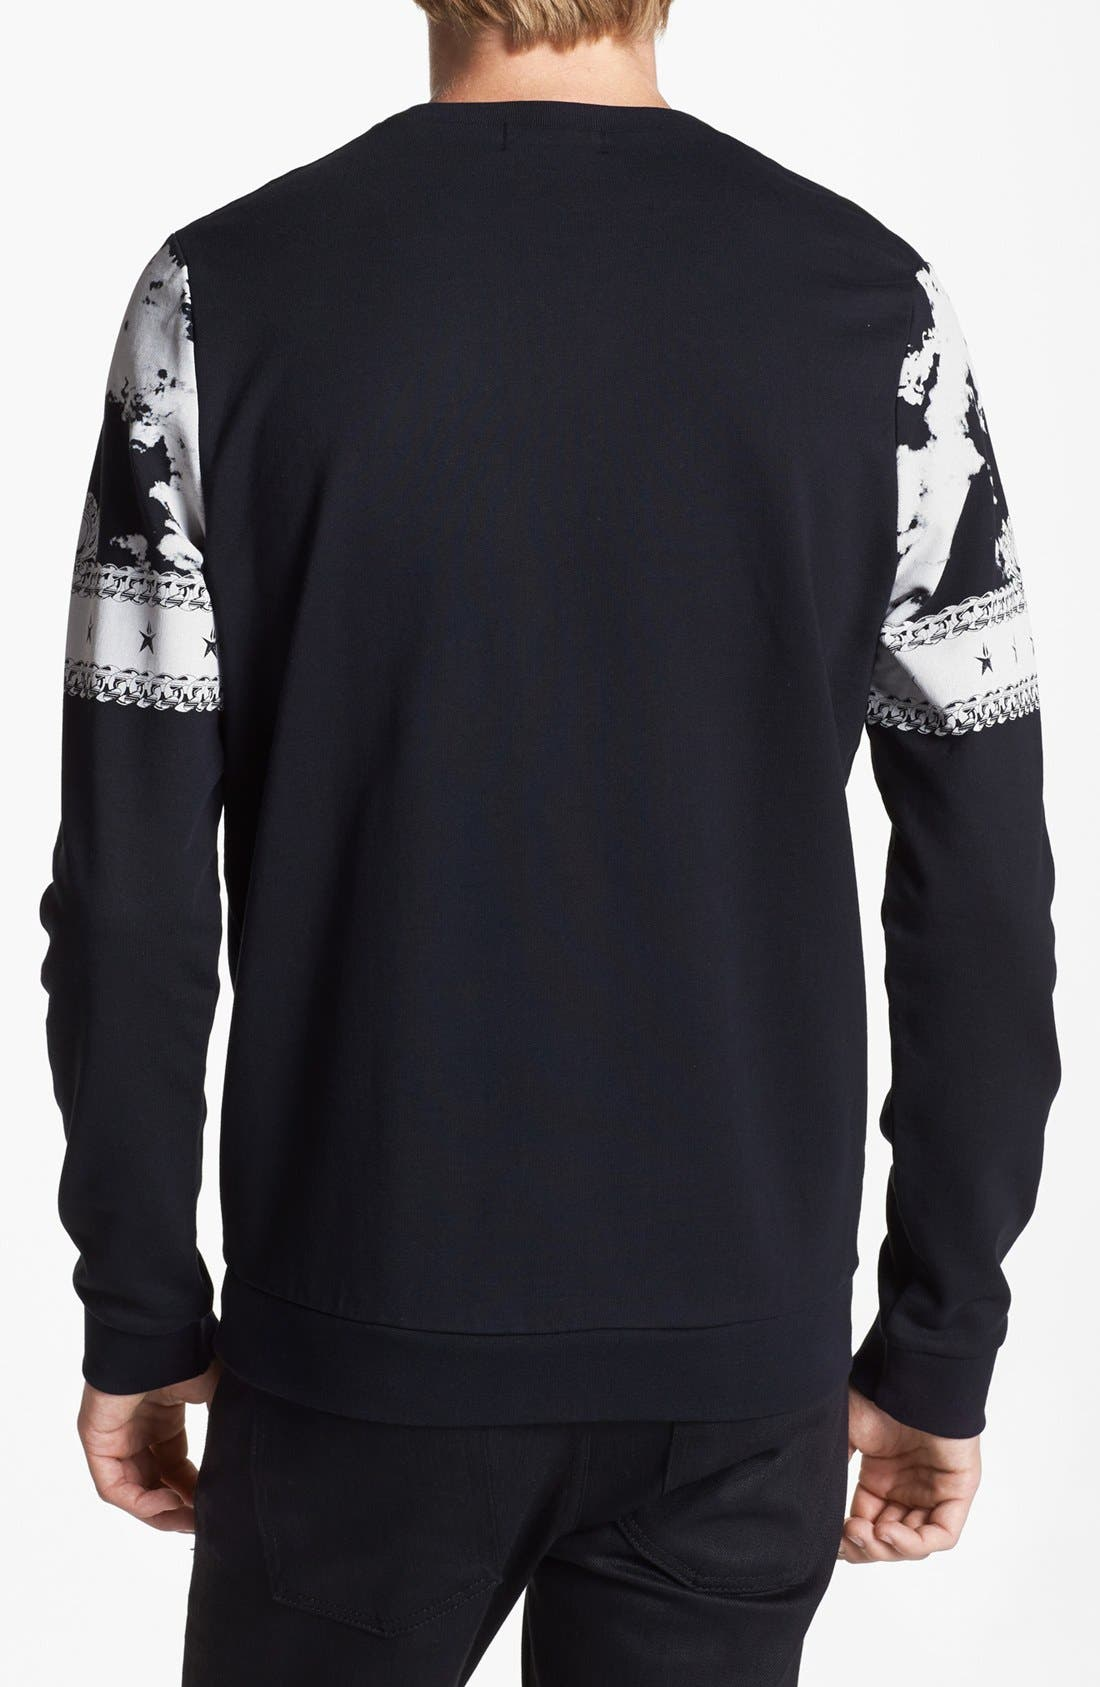 Alternate Image 2  - Topman Baroque Print Crewneck Sweatshirt